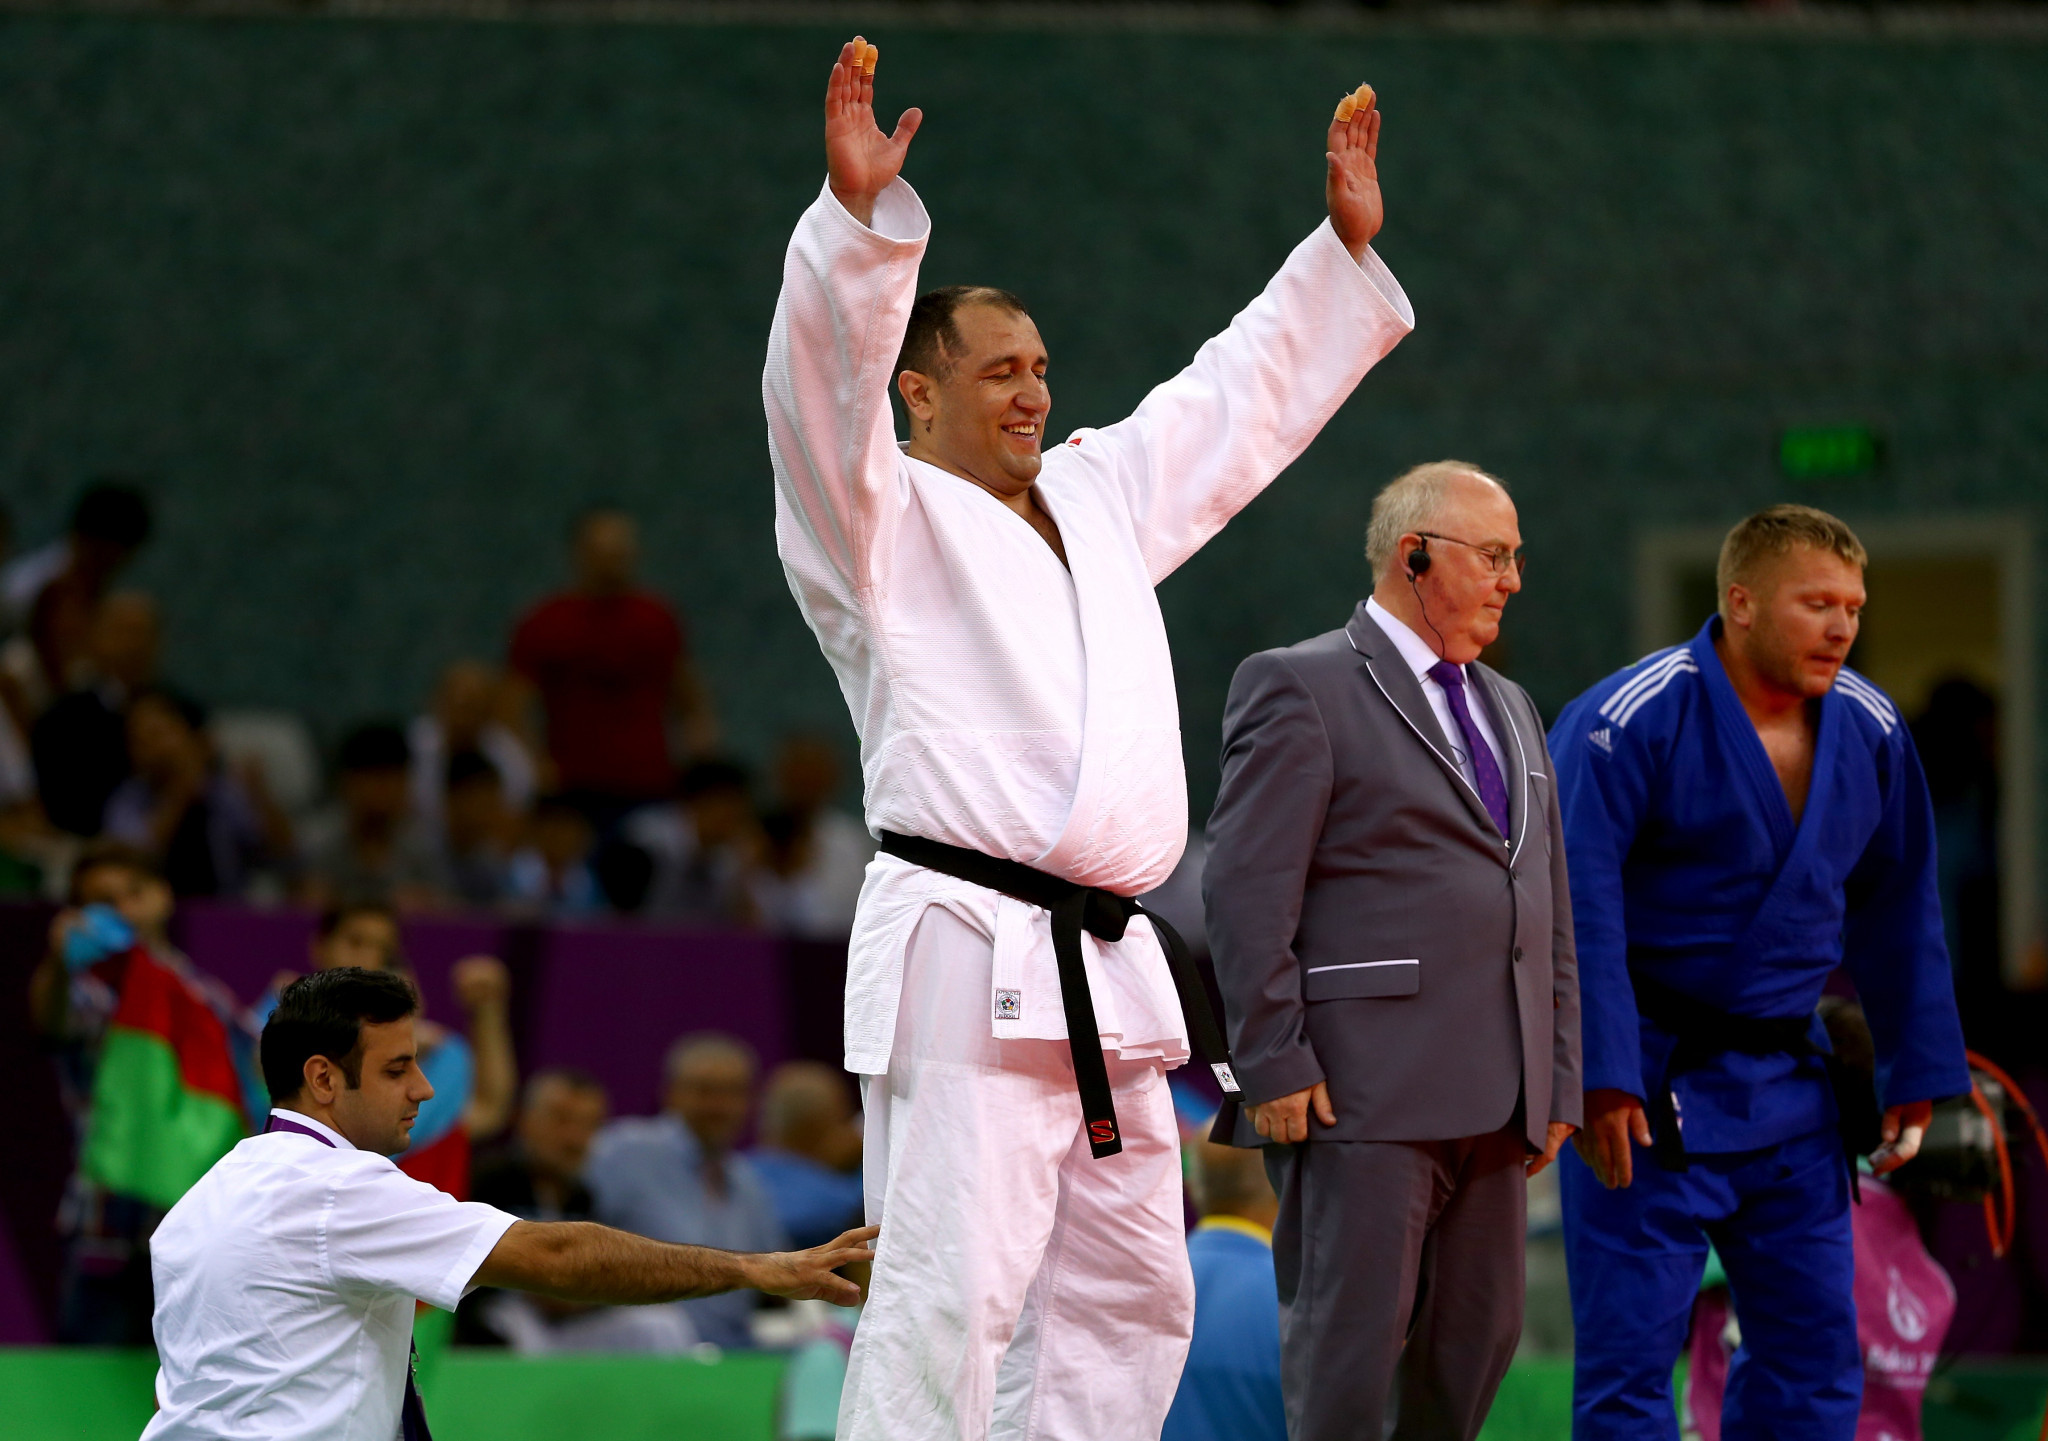 Paralympic qualification on offer at IBSA Judo World Championships in Portugal